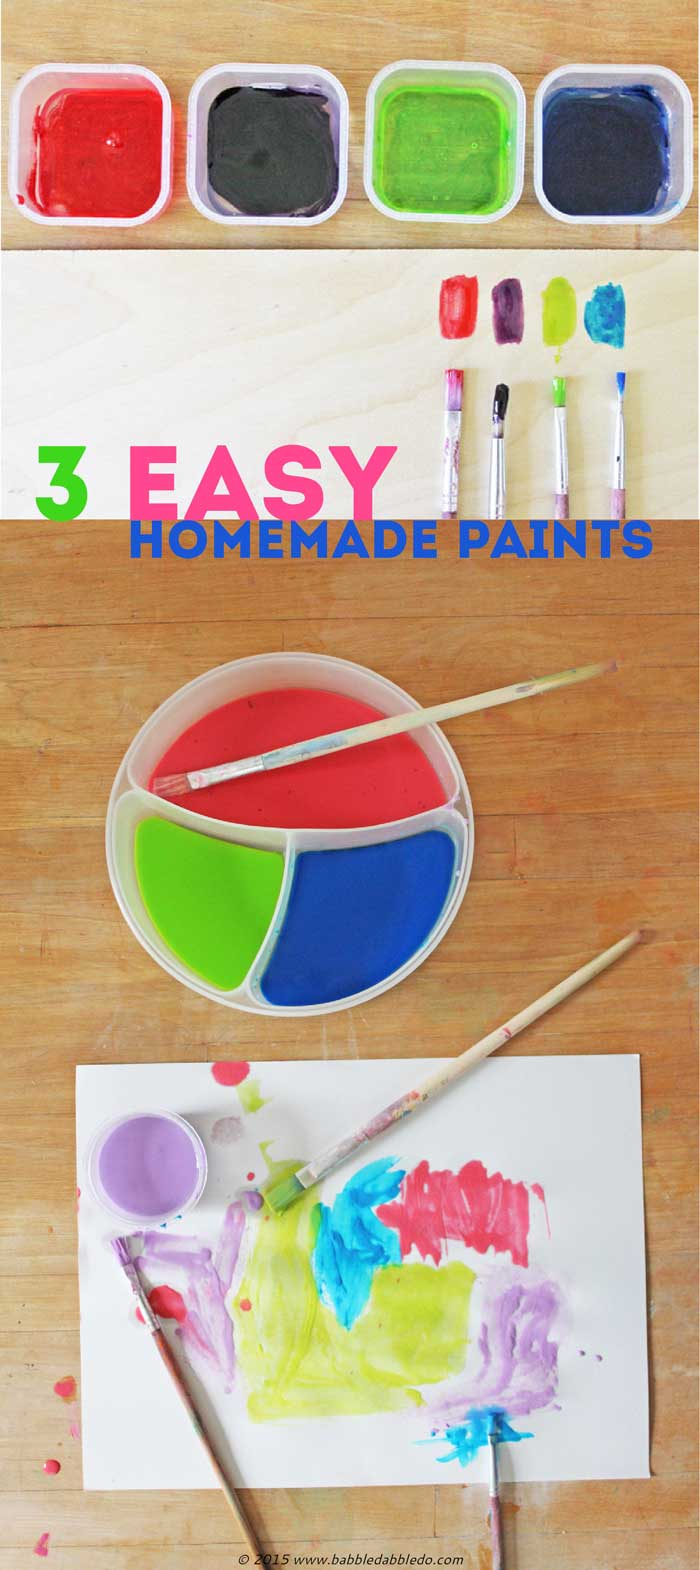 3 Easy Diy Storage Ideas For Small Kitchen: DIY Art Materials: 3 Easy Homemade Paints For Kids